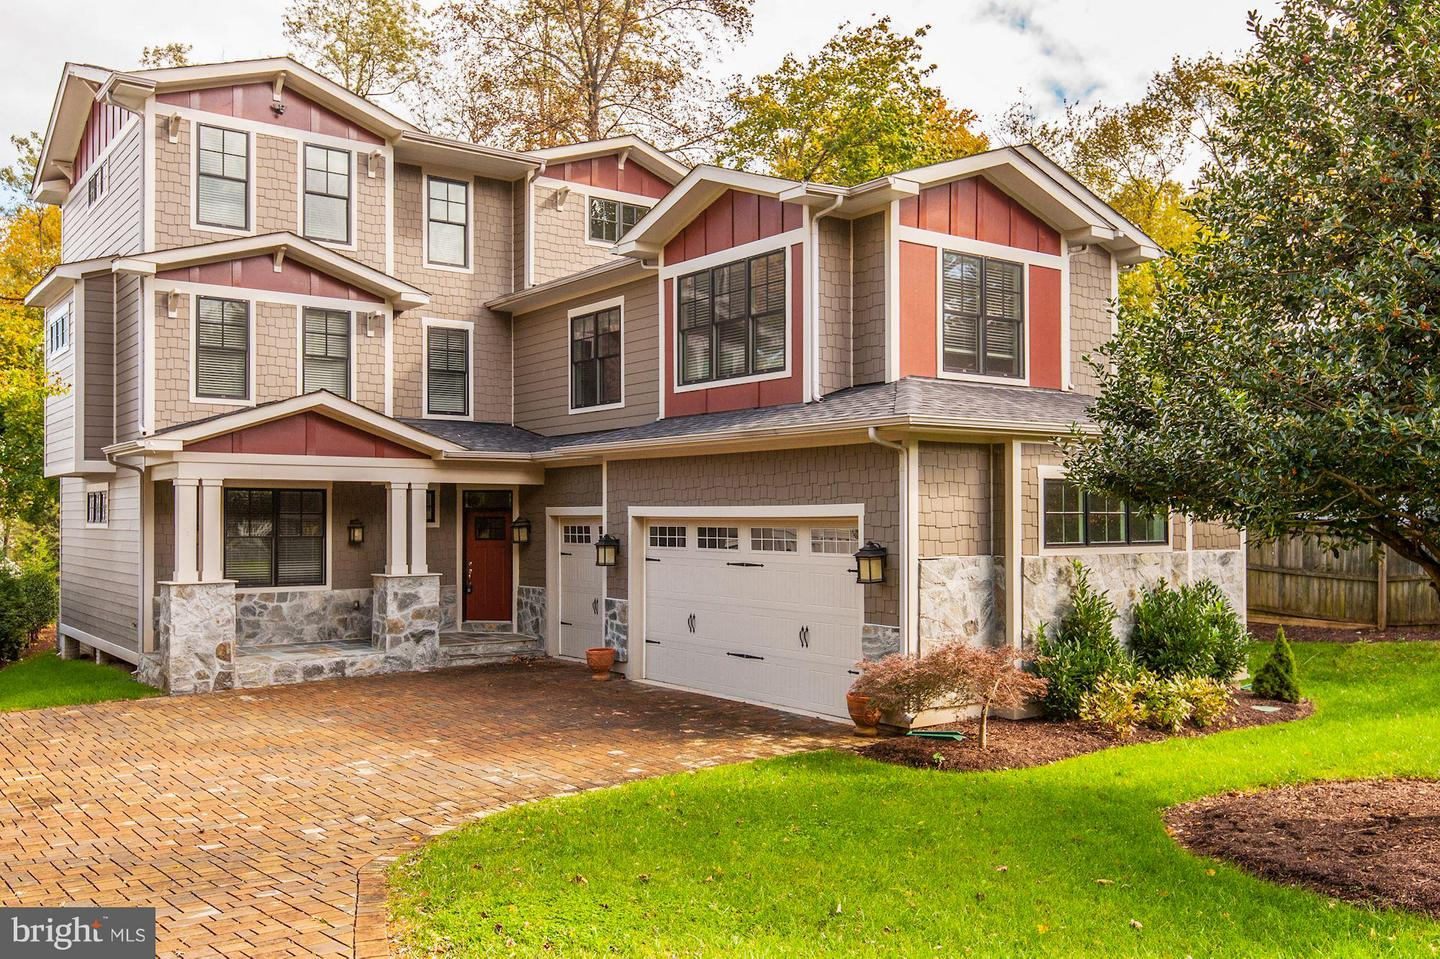 Single Family Home for Sale at 2509 Fowler Street 2509 Fowler Street Falls Church, Virginia 22046 United States